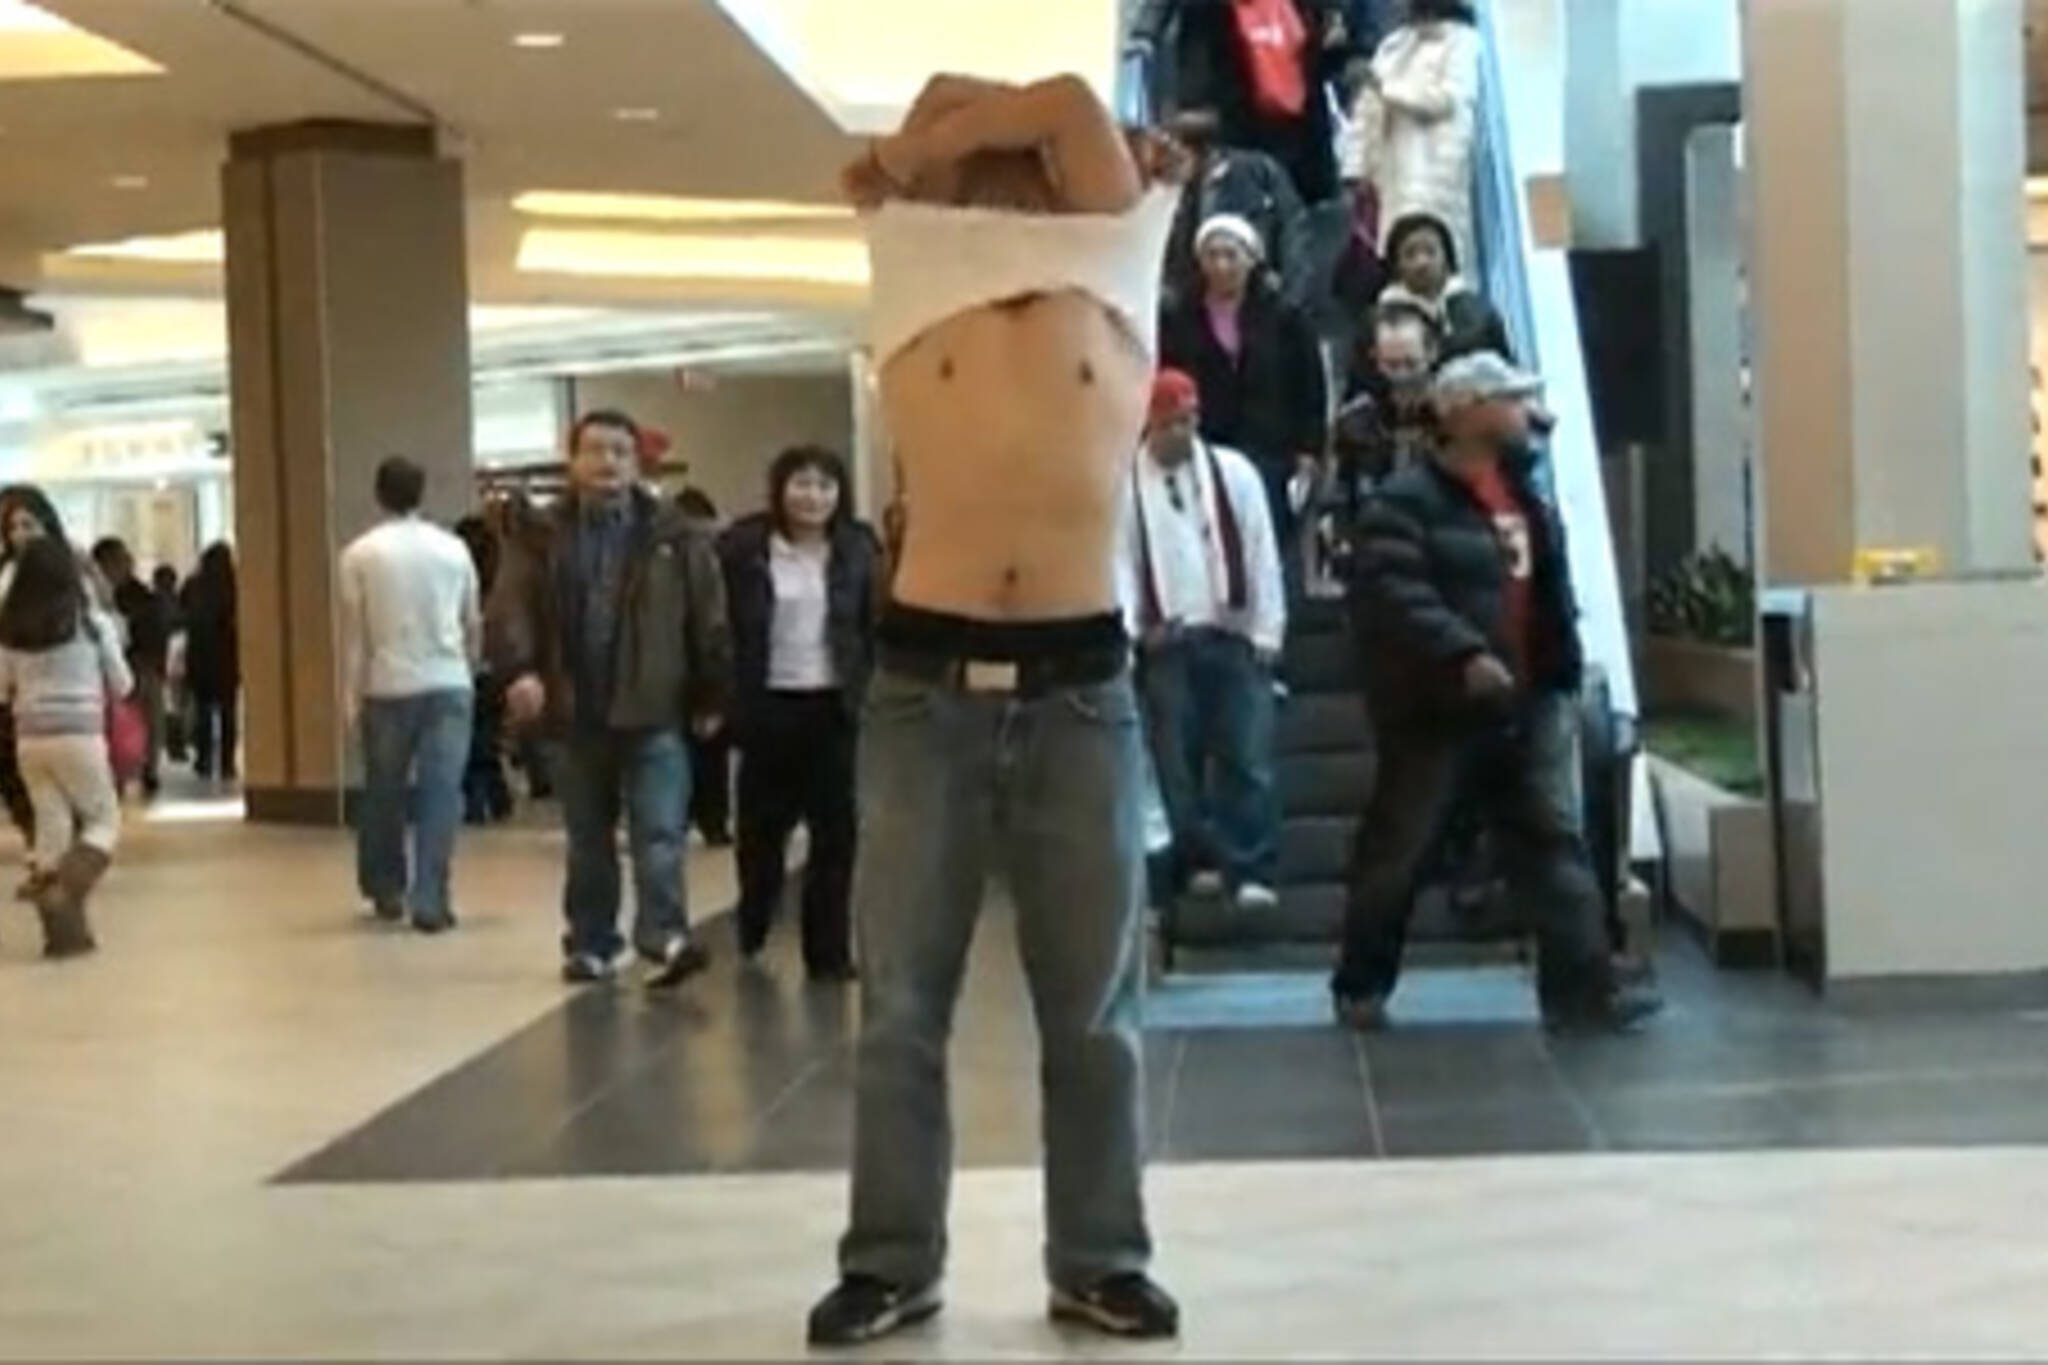 crazy asian guy dancing in public toronto